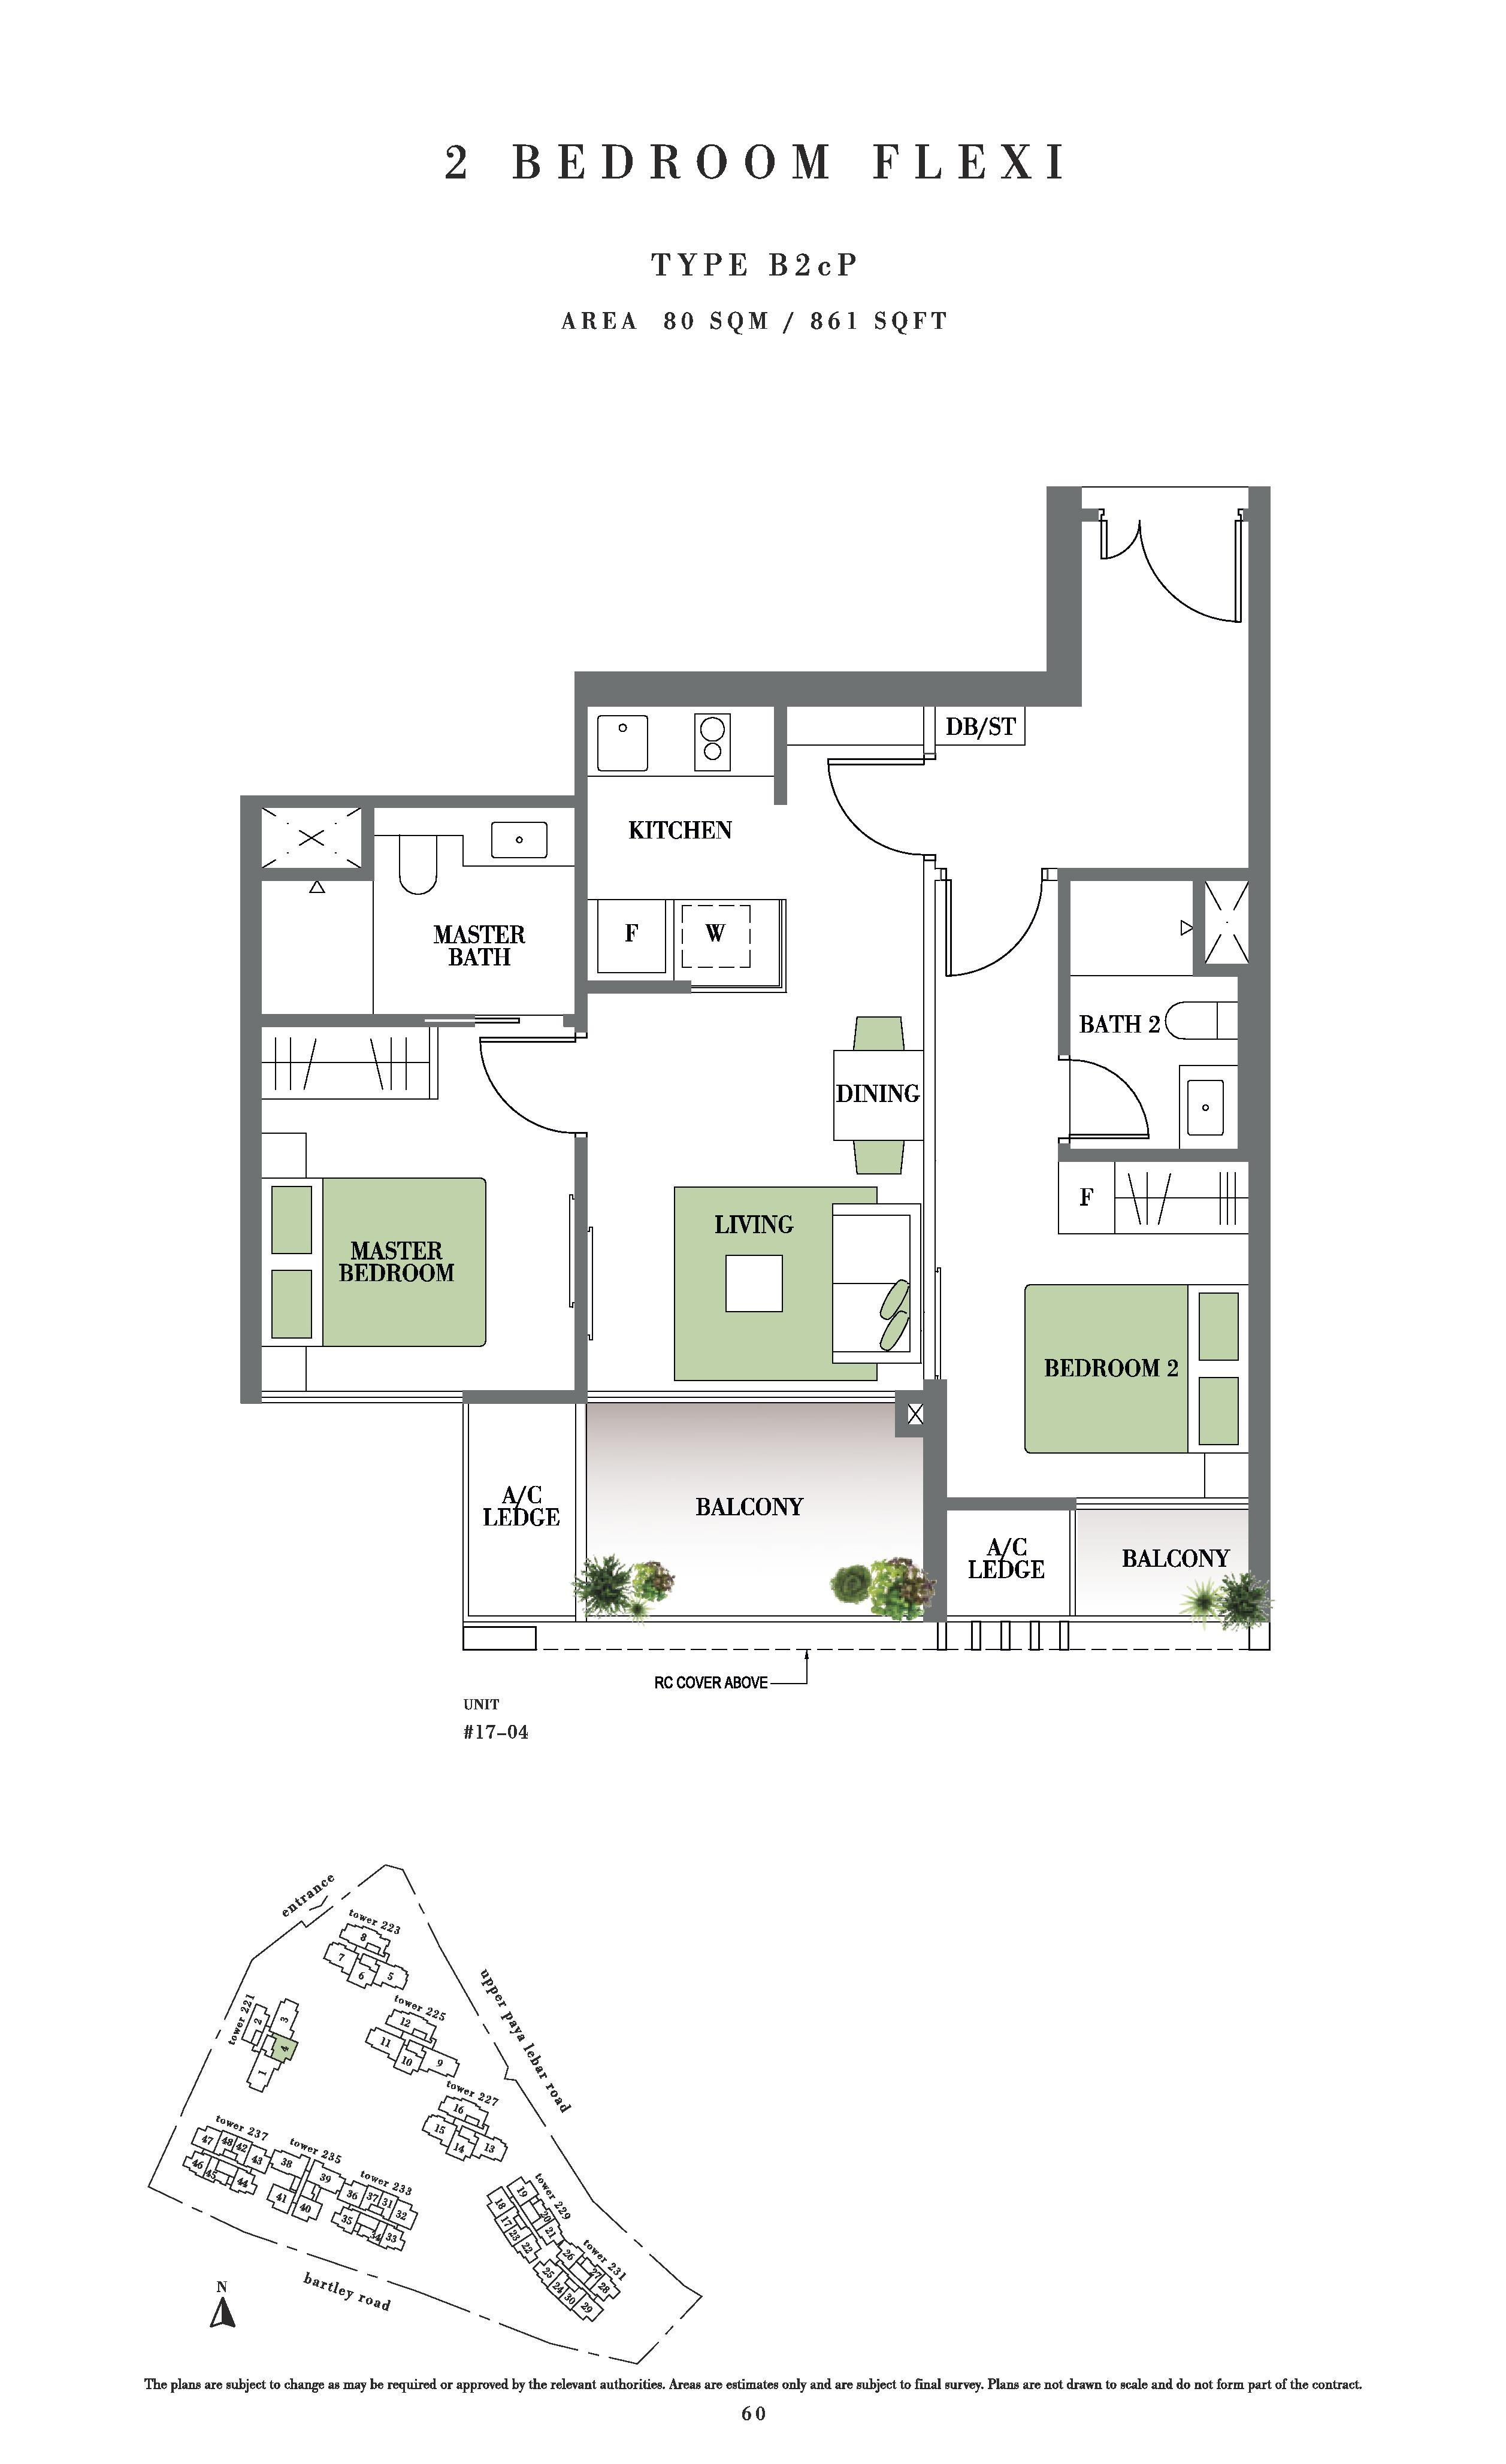 Botanique @ Bartley 2 Bedroom Flexi Floor Plans Type B2cP